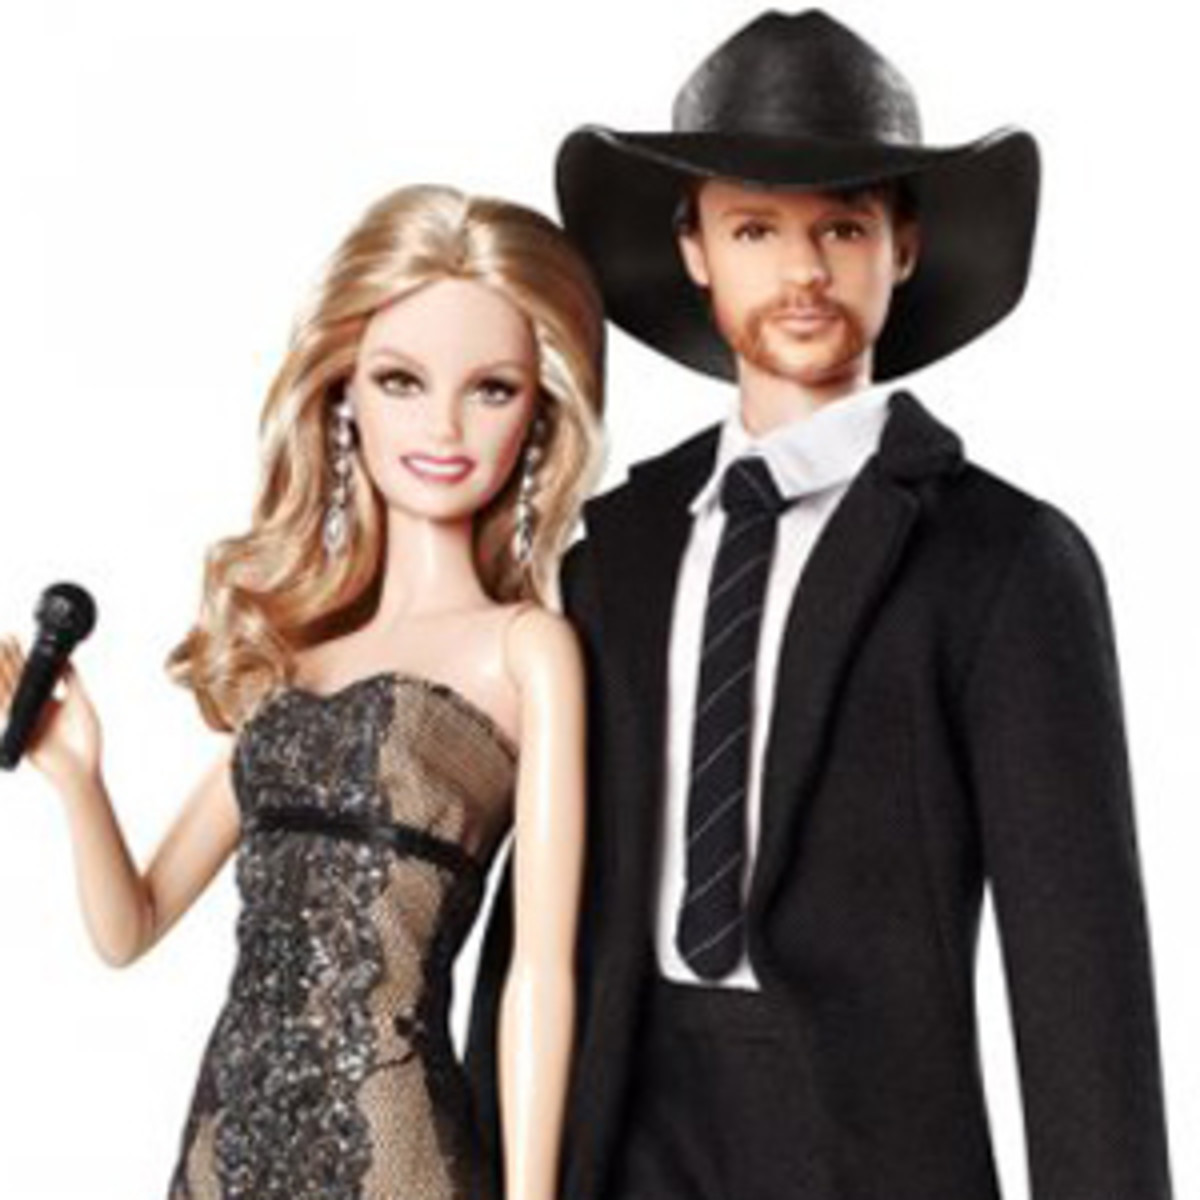 Tim McGraw & Faith Hill Barbie Dolls by Mattel